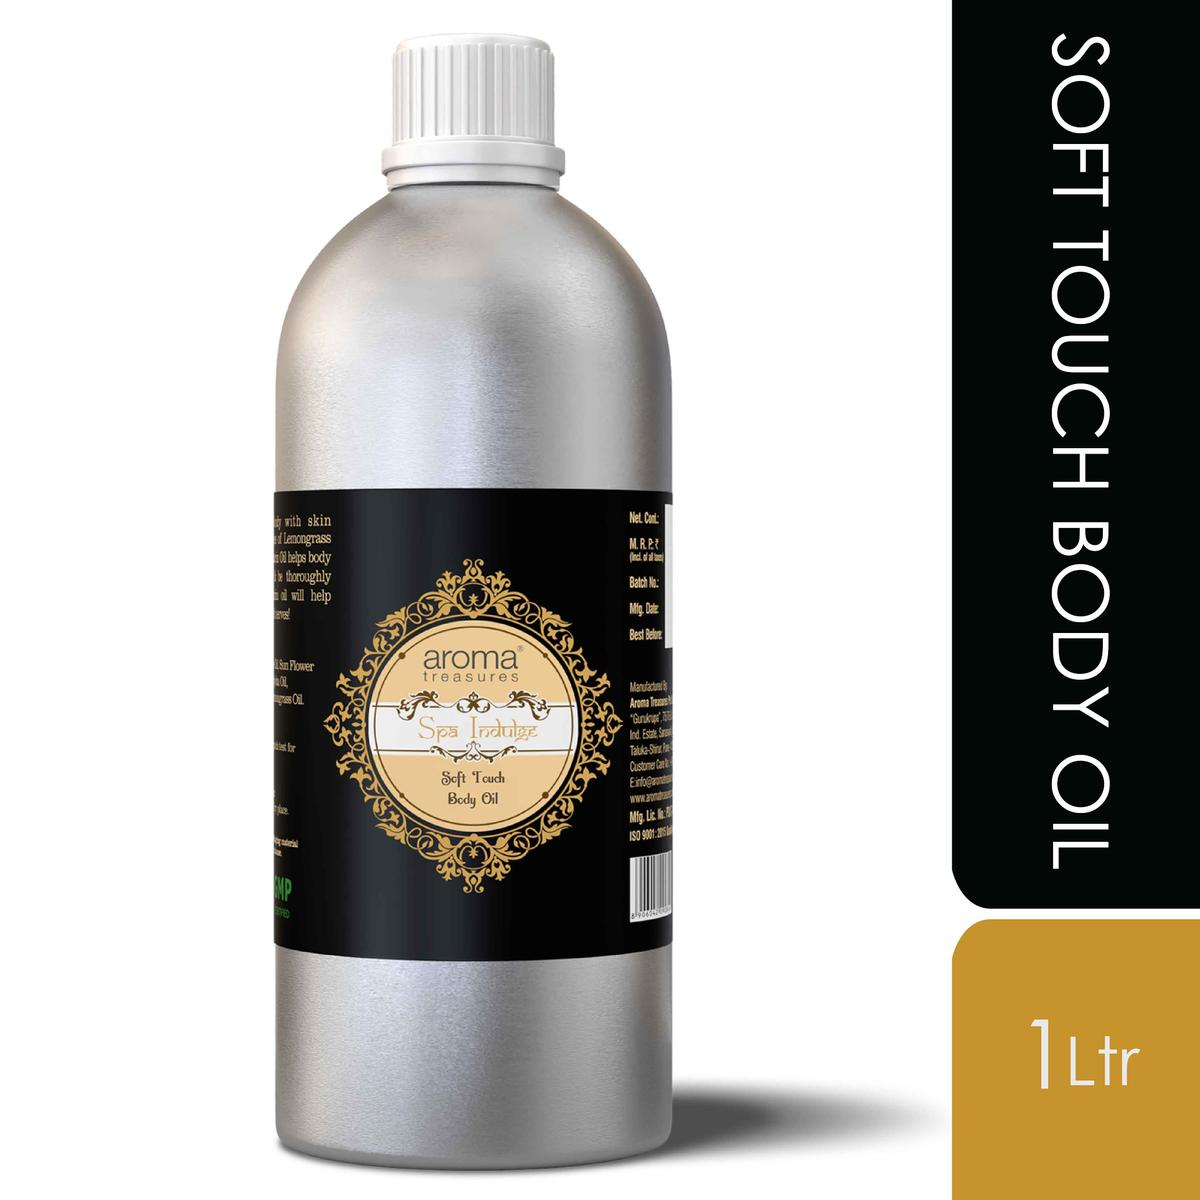 Aroma Treasures Soft Touch Body Oil - 1 Ltr